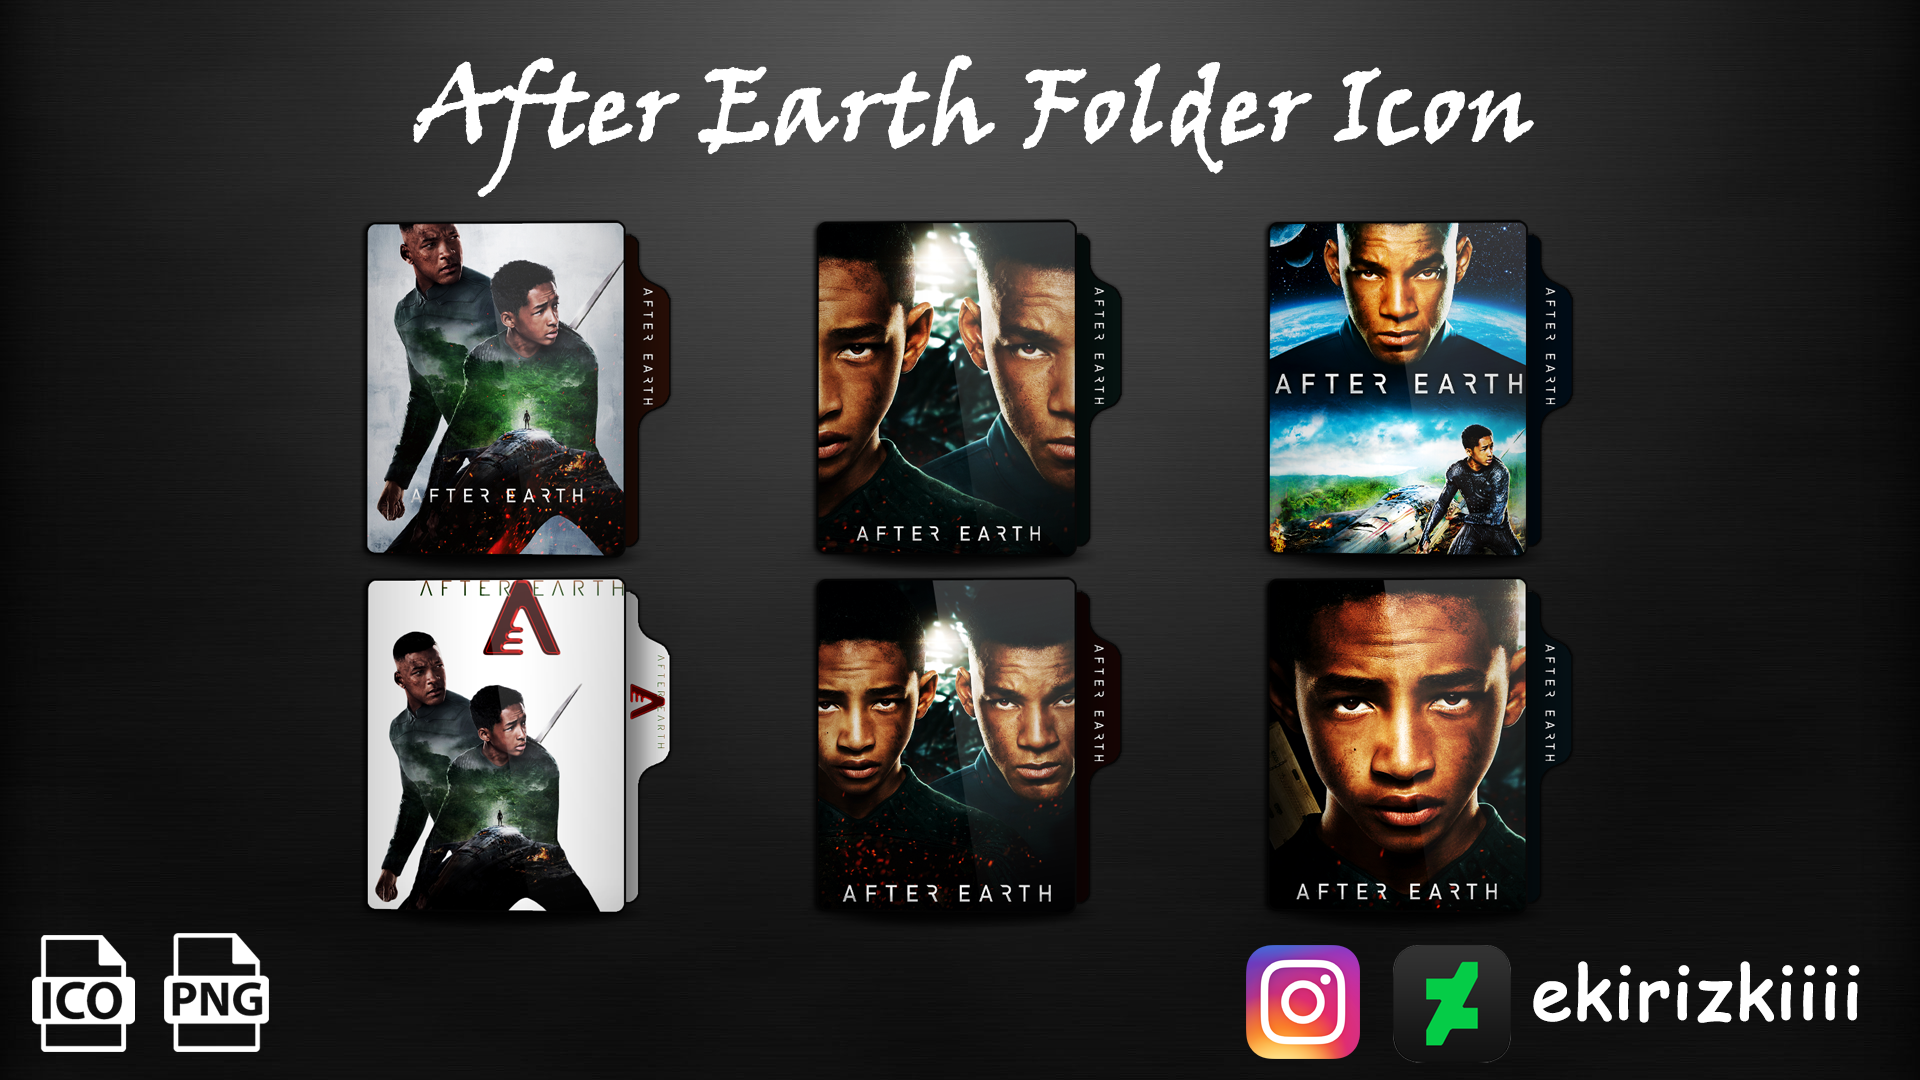 After Earth 2013 Folder Icon By Ekirizkiiii On Deviantart